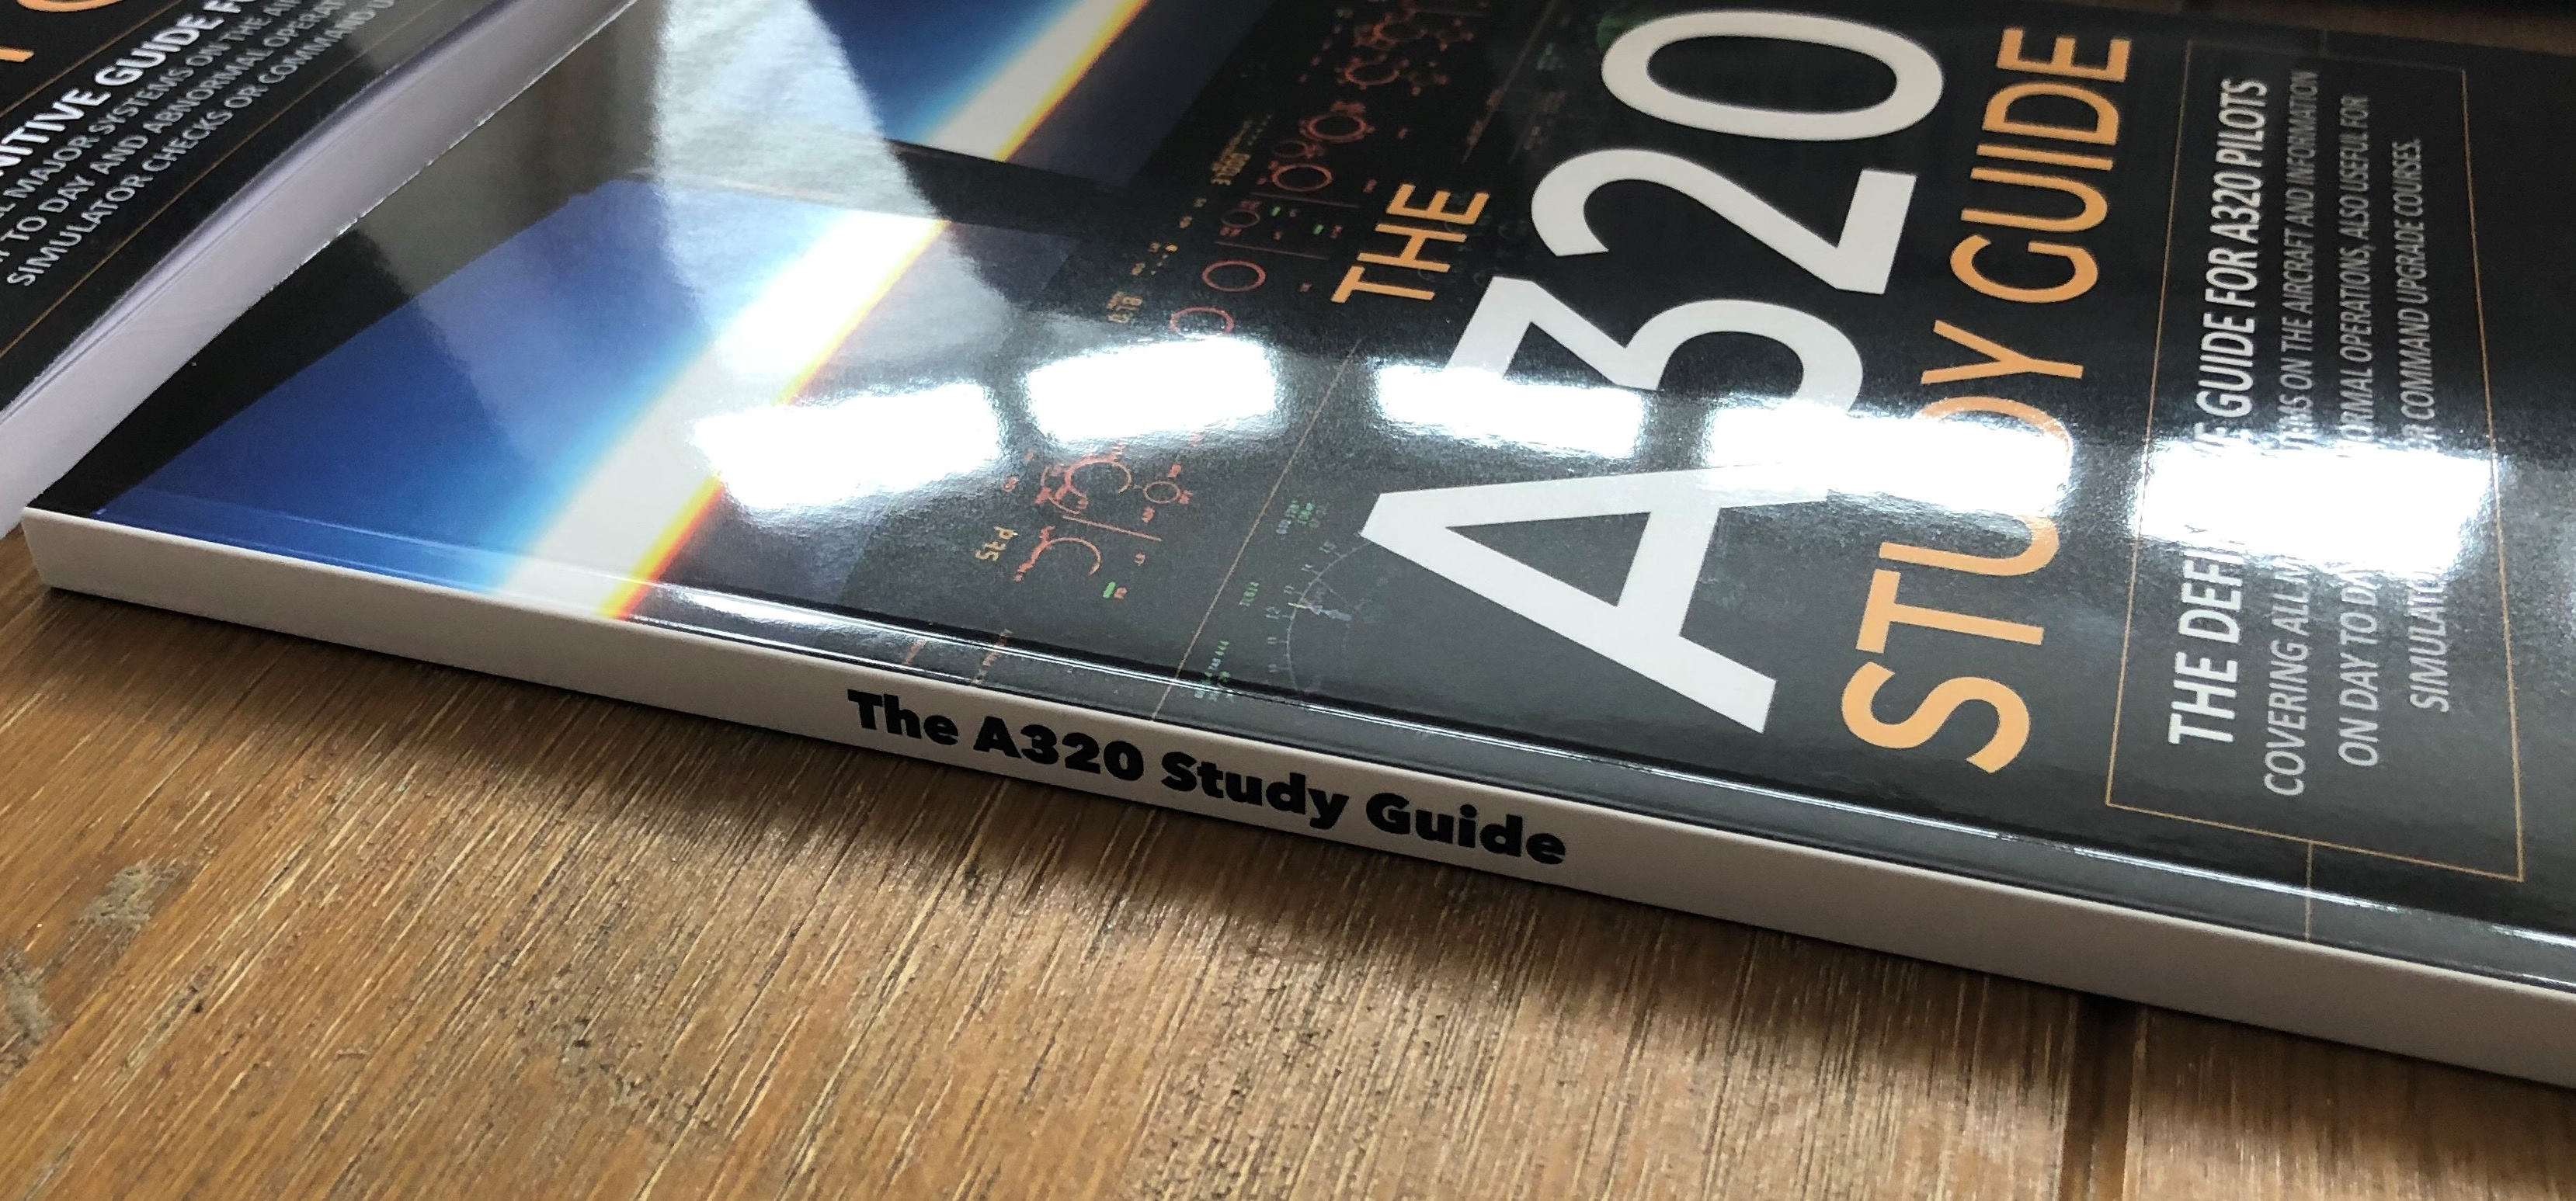 The A320 Guide - Spine View